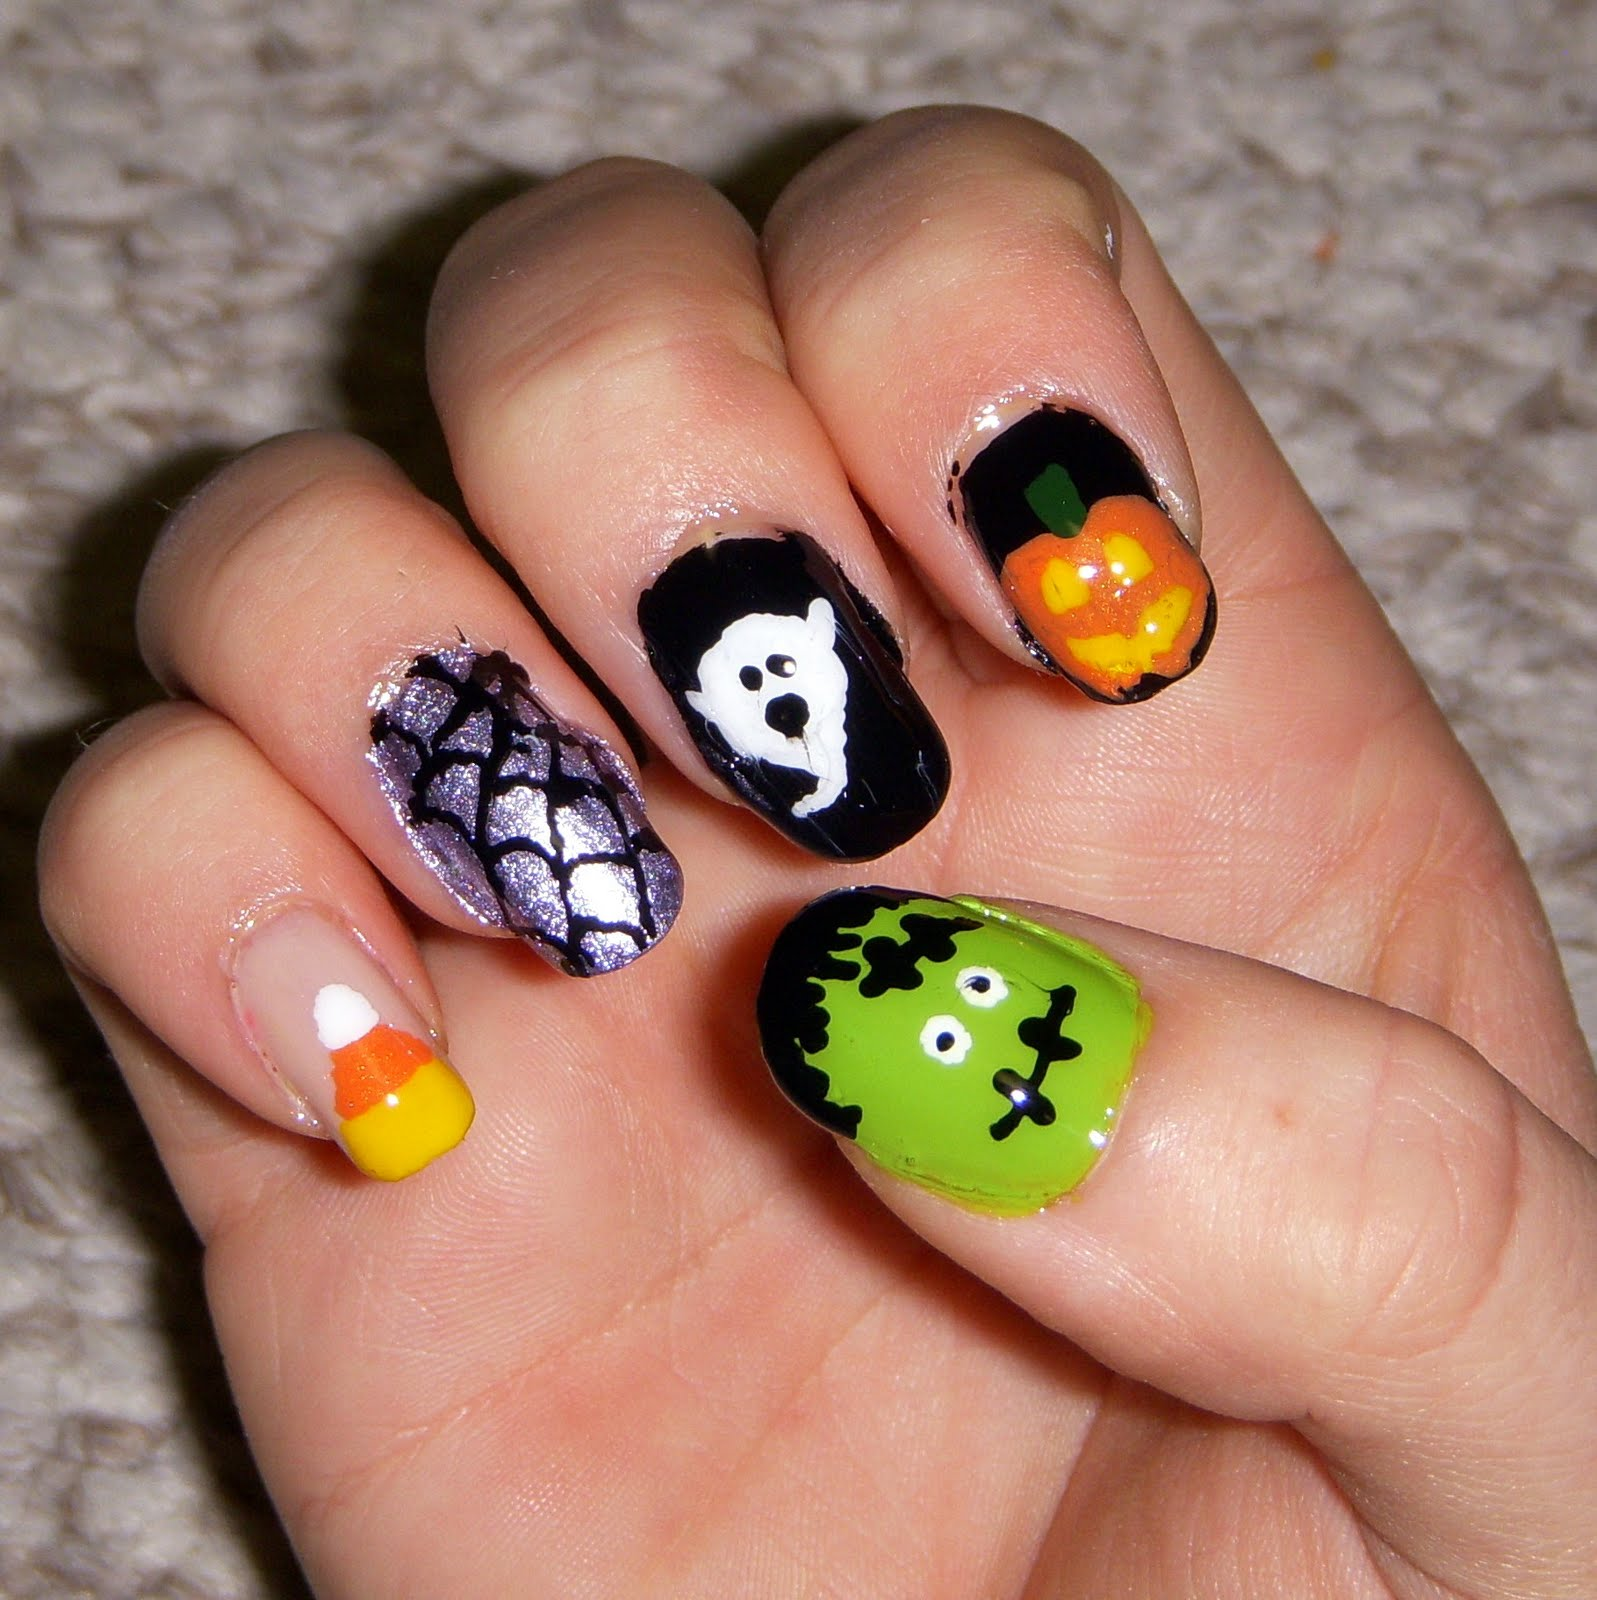 Quixii's Nails: 10/28/11 - Halloween Nails